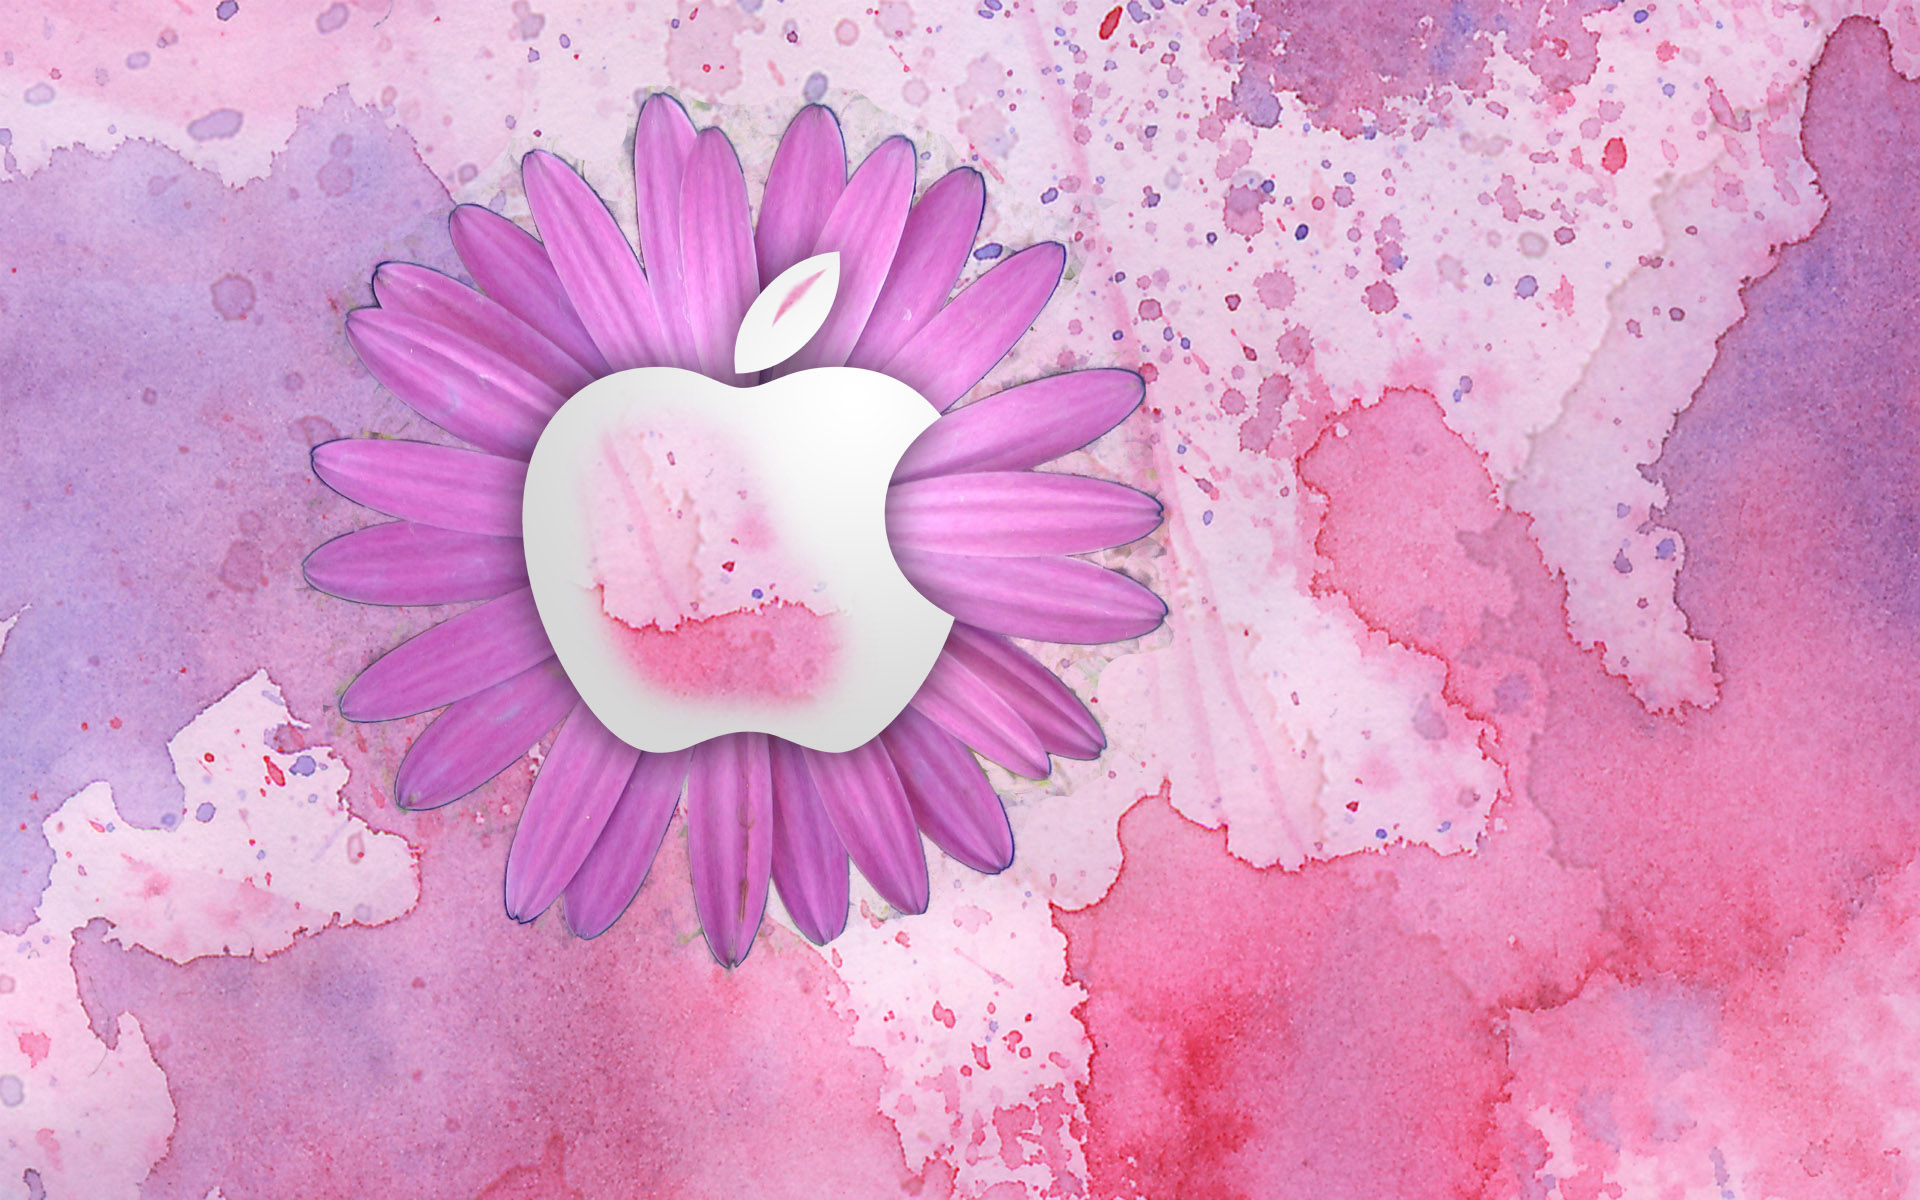 pink mac wallpaper hd - photo #38